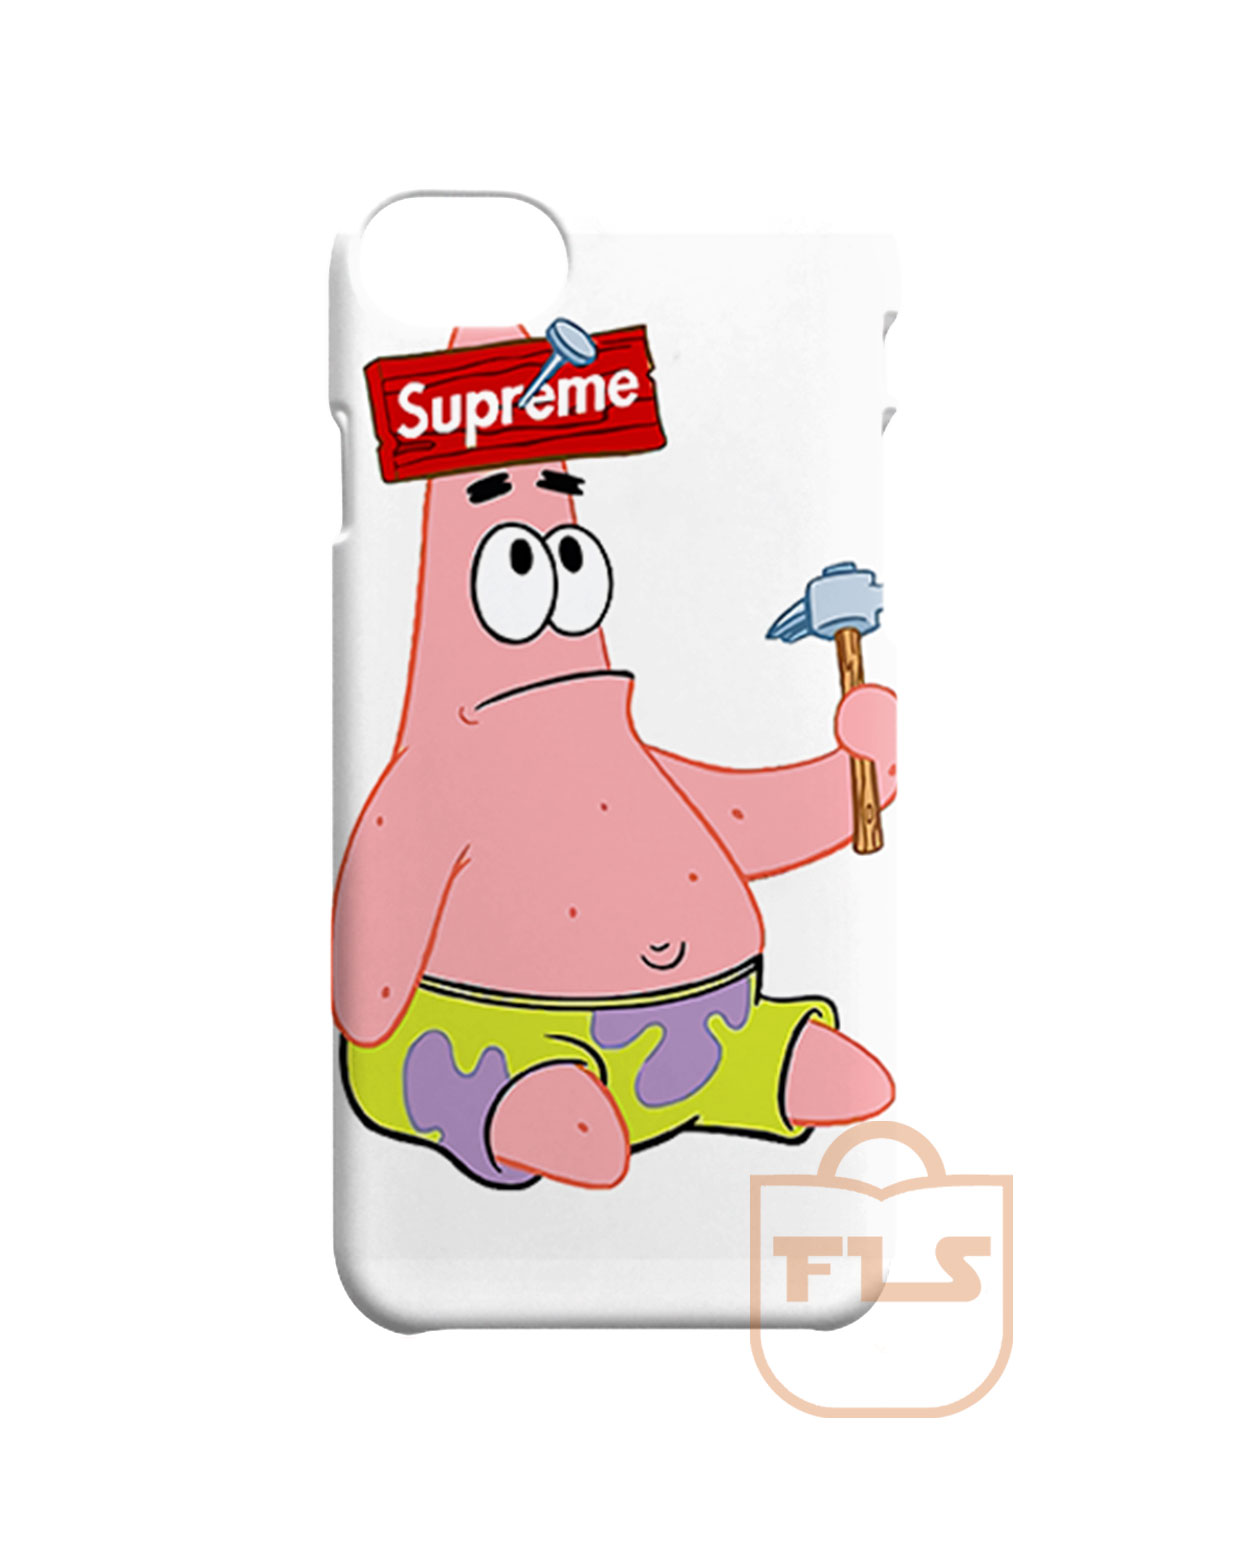 separation shoes 094ad 6b5ae Patrick the Star Supreme iPhone X Case, iPhone XR, iPhone XS Max, iPhone XS